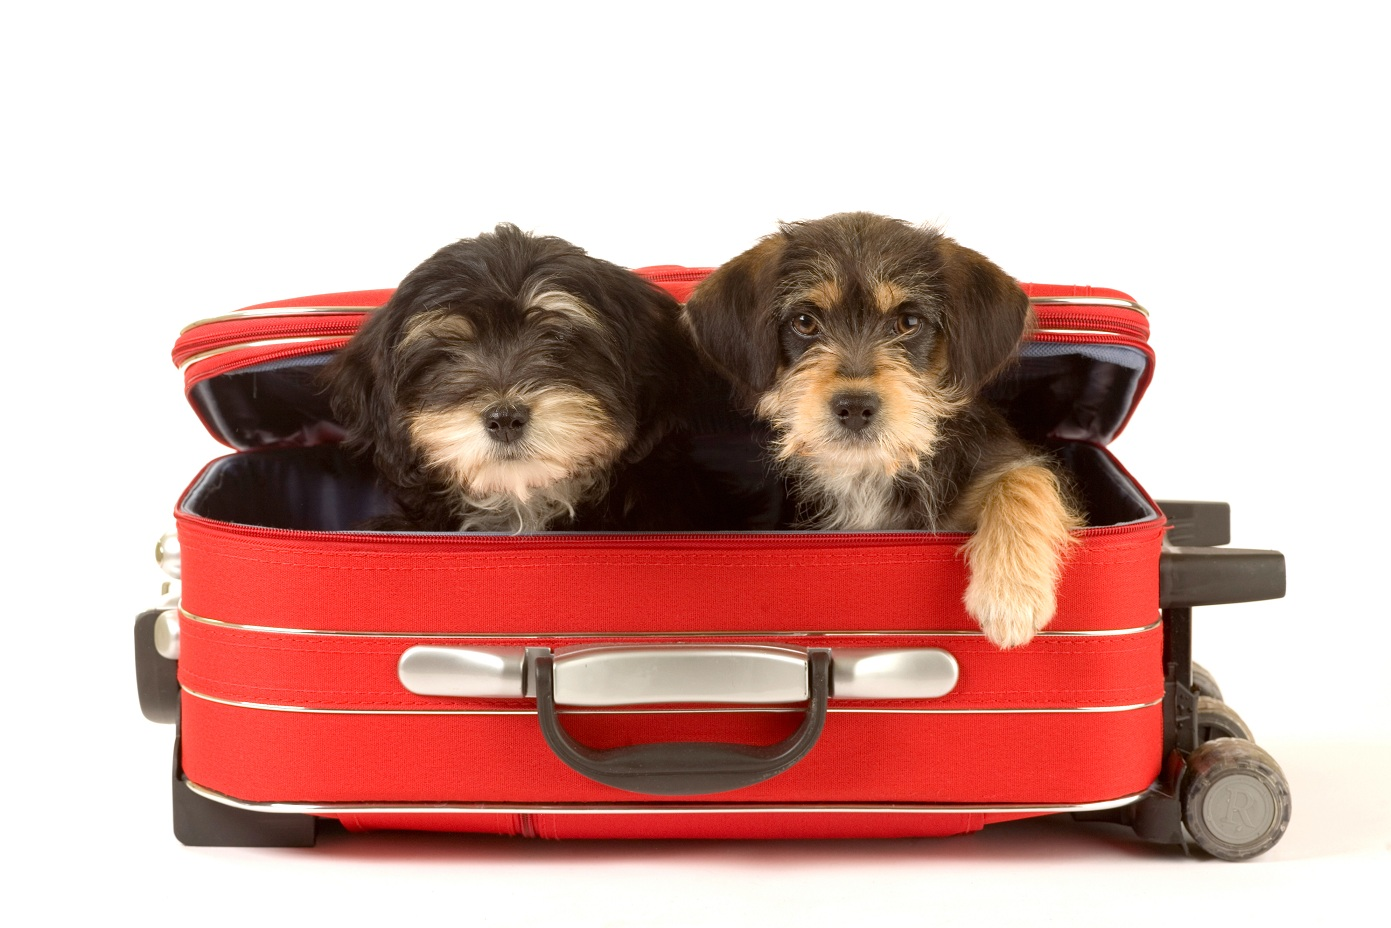 Bishop Ranch Veterinary Center: Pet Hotels: Traveling with ...